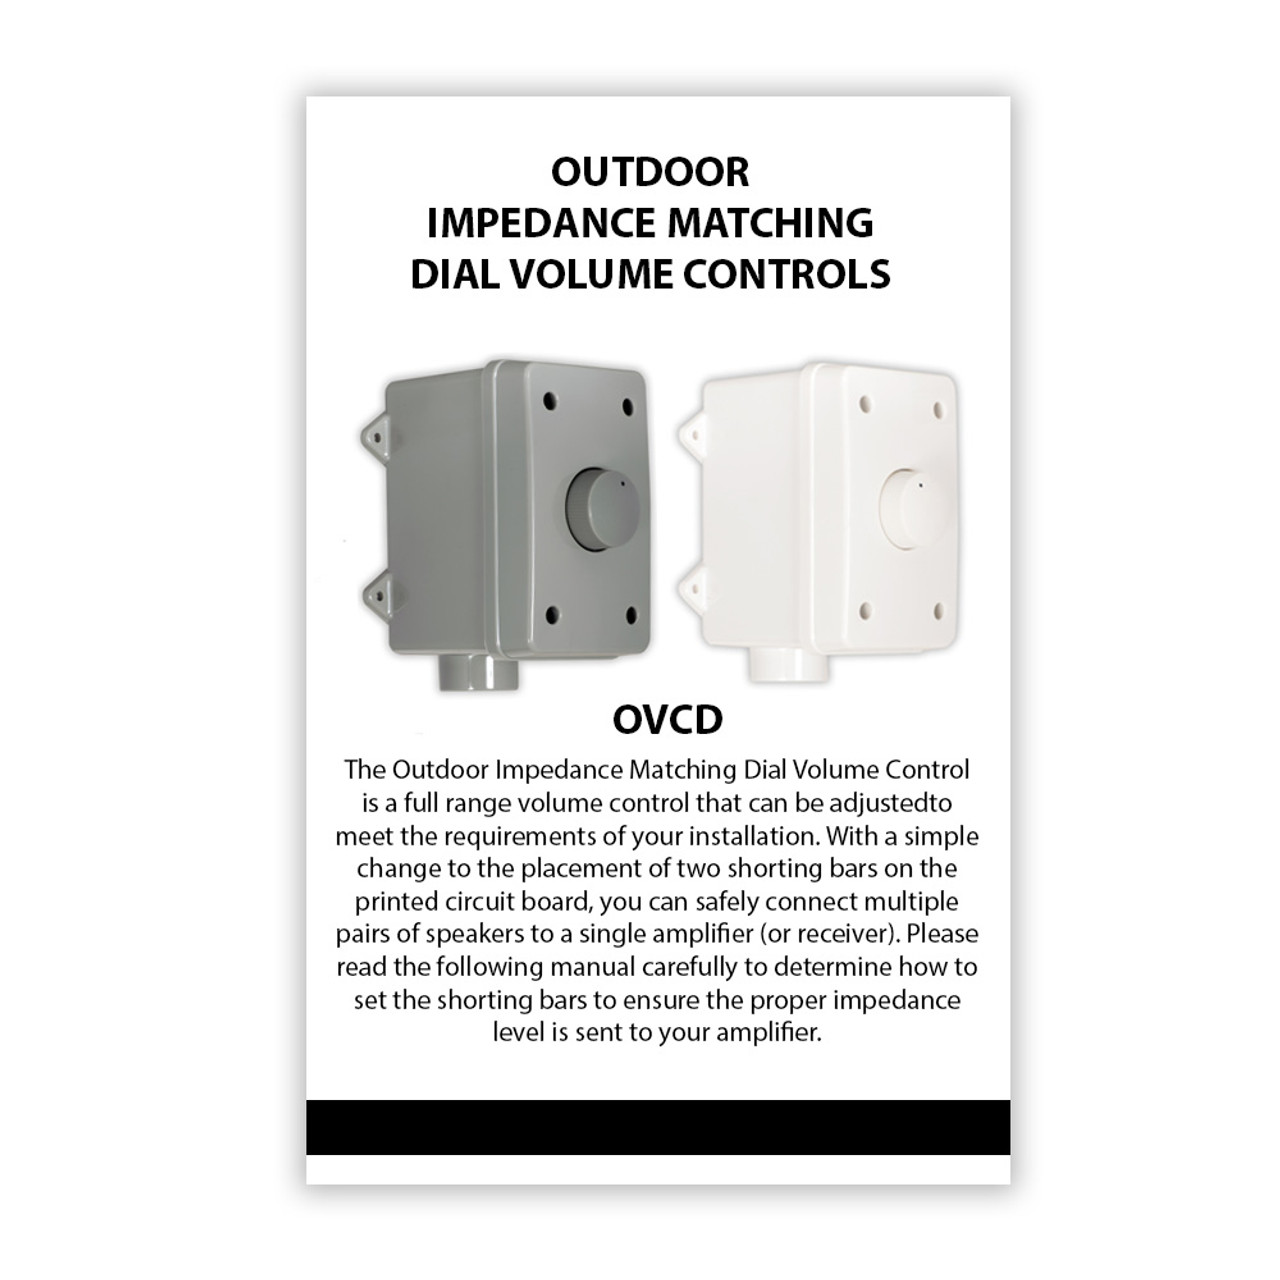 Acoustic Audio AAOVCD-G Outdoor Weatherproof Speaker Dial Volume Controls  Impedance Matching 3 Pack AAOVCD-G-3S